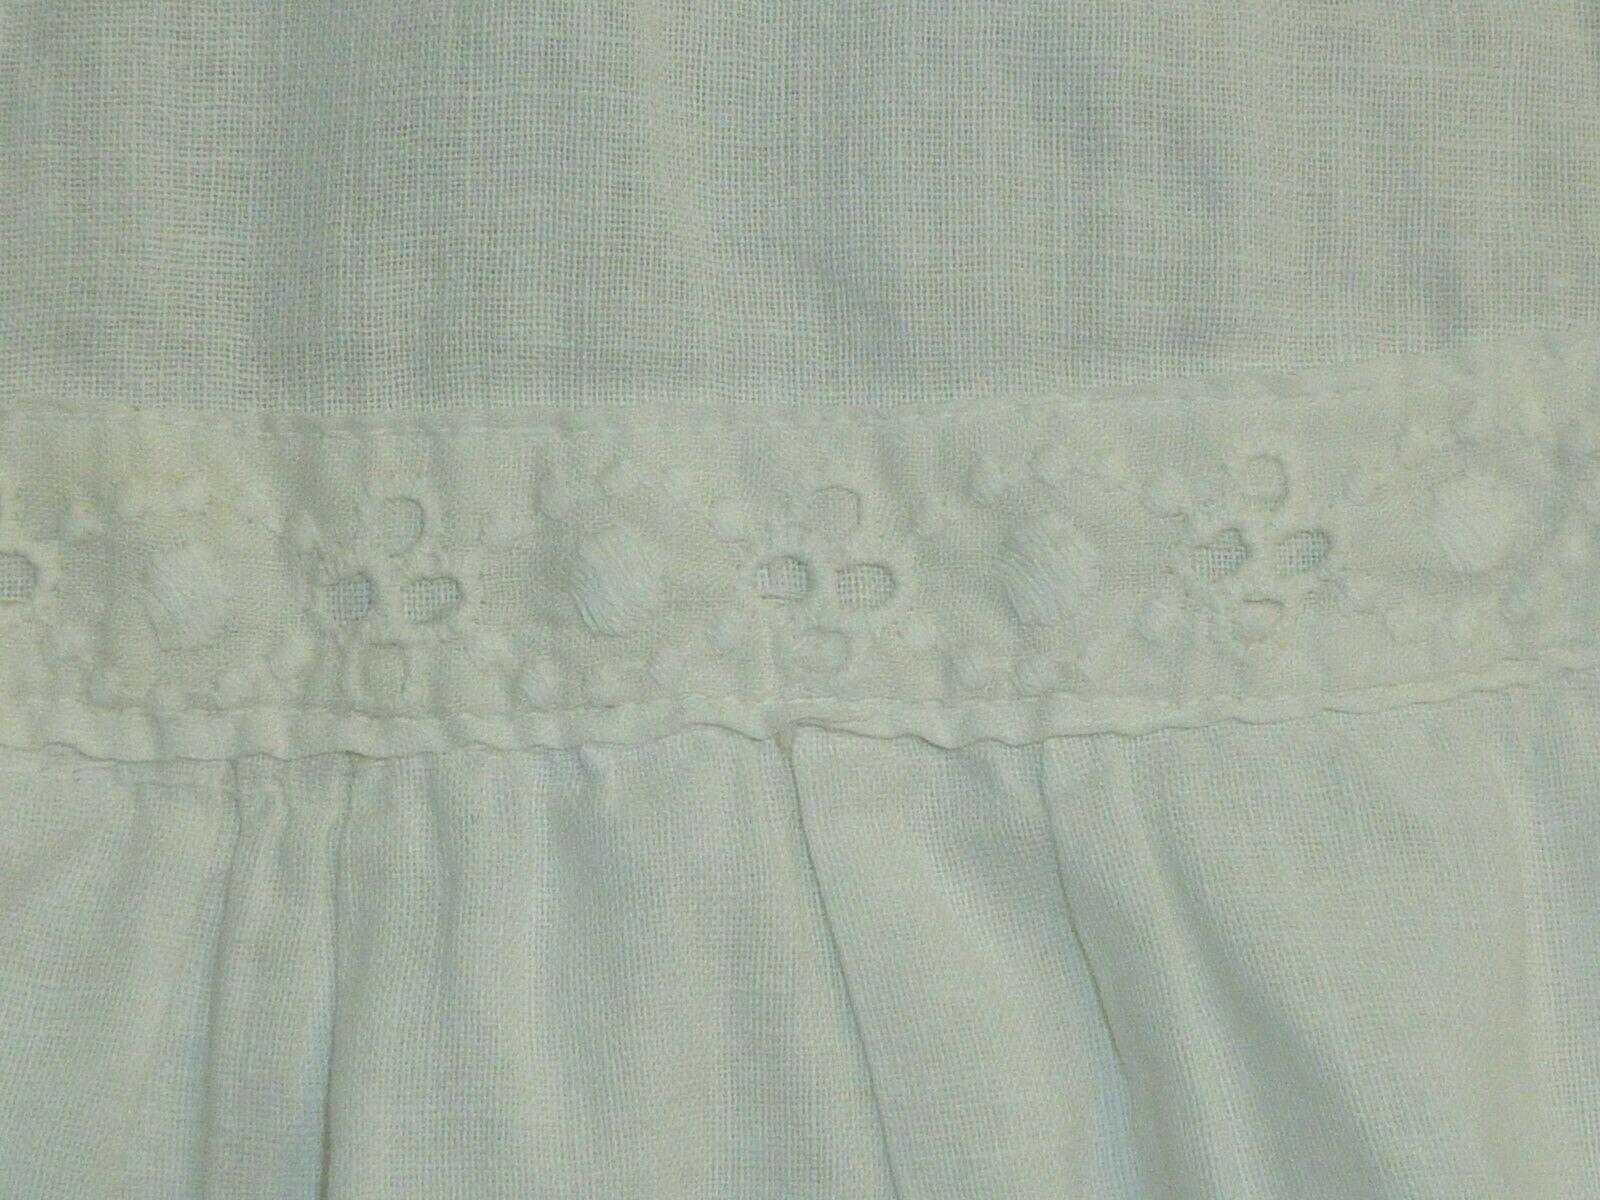 Antique LINEN Skirt~Embroidered Eyelet Lace Petti… - image 6